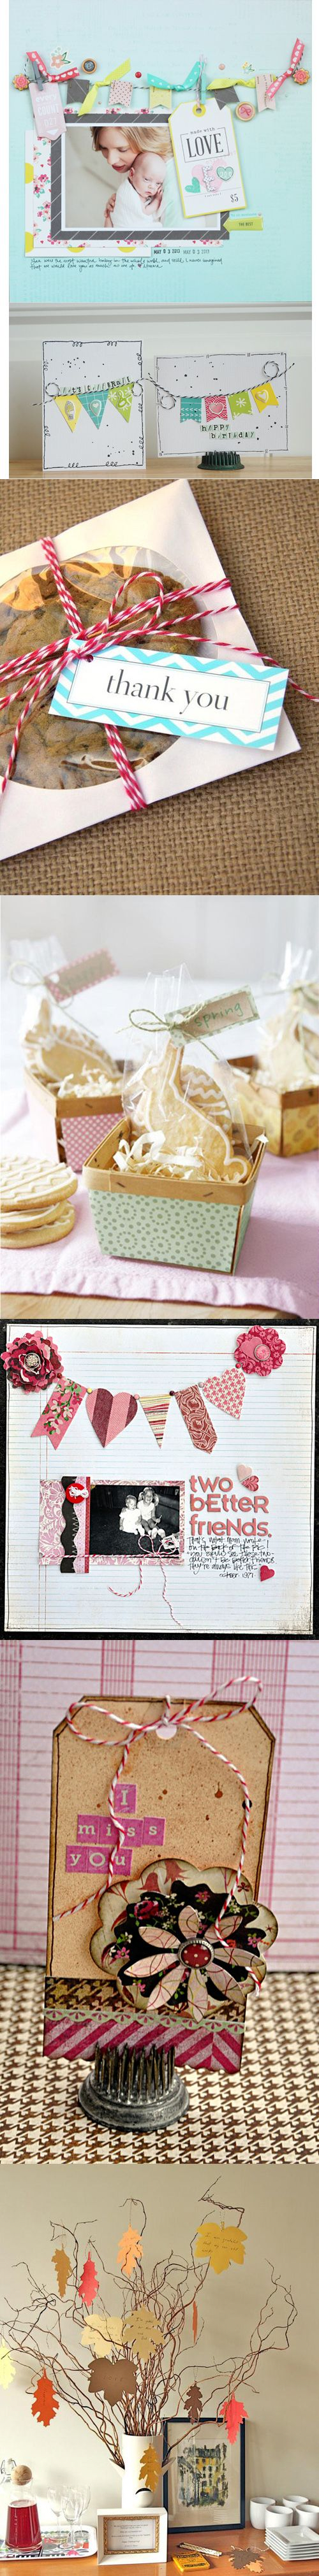 Scrapbook ideas cheap - Check Out Todays Deal On Peachy Cheap See More Scrapbook Layouts Enamelsdots